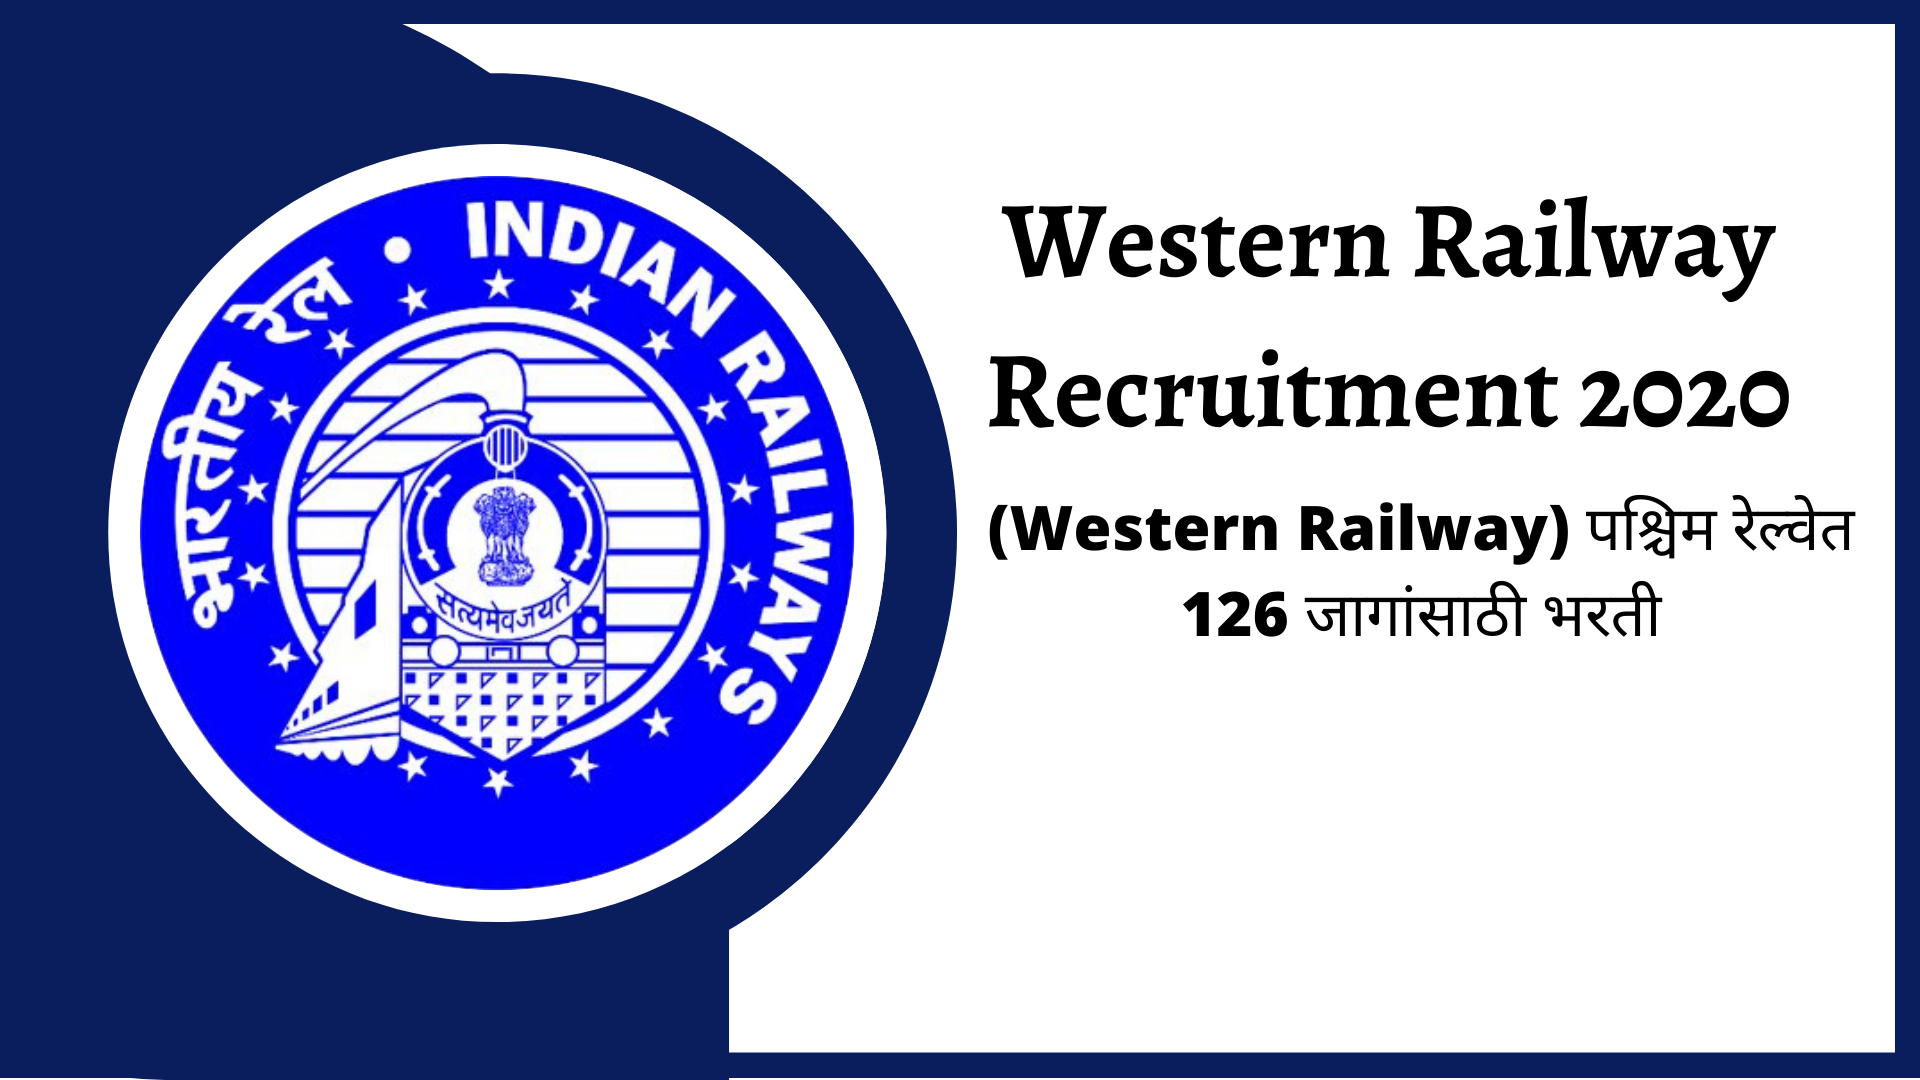 western railway recruitment 2020 apply online western railway recruitment 2019 apply online www rrc wr com 2020 www rrc wr com online registration www rrc wr com 2019 rrc western railway recruitment 2019 www rrc wr com login western railway apprentice recruitment 2020